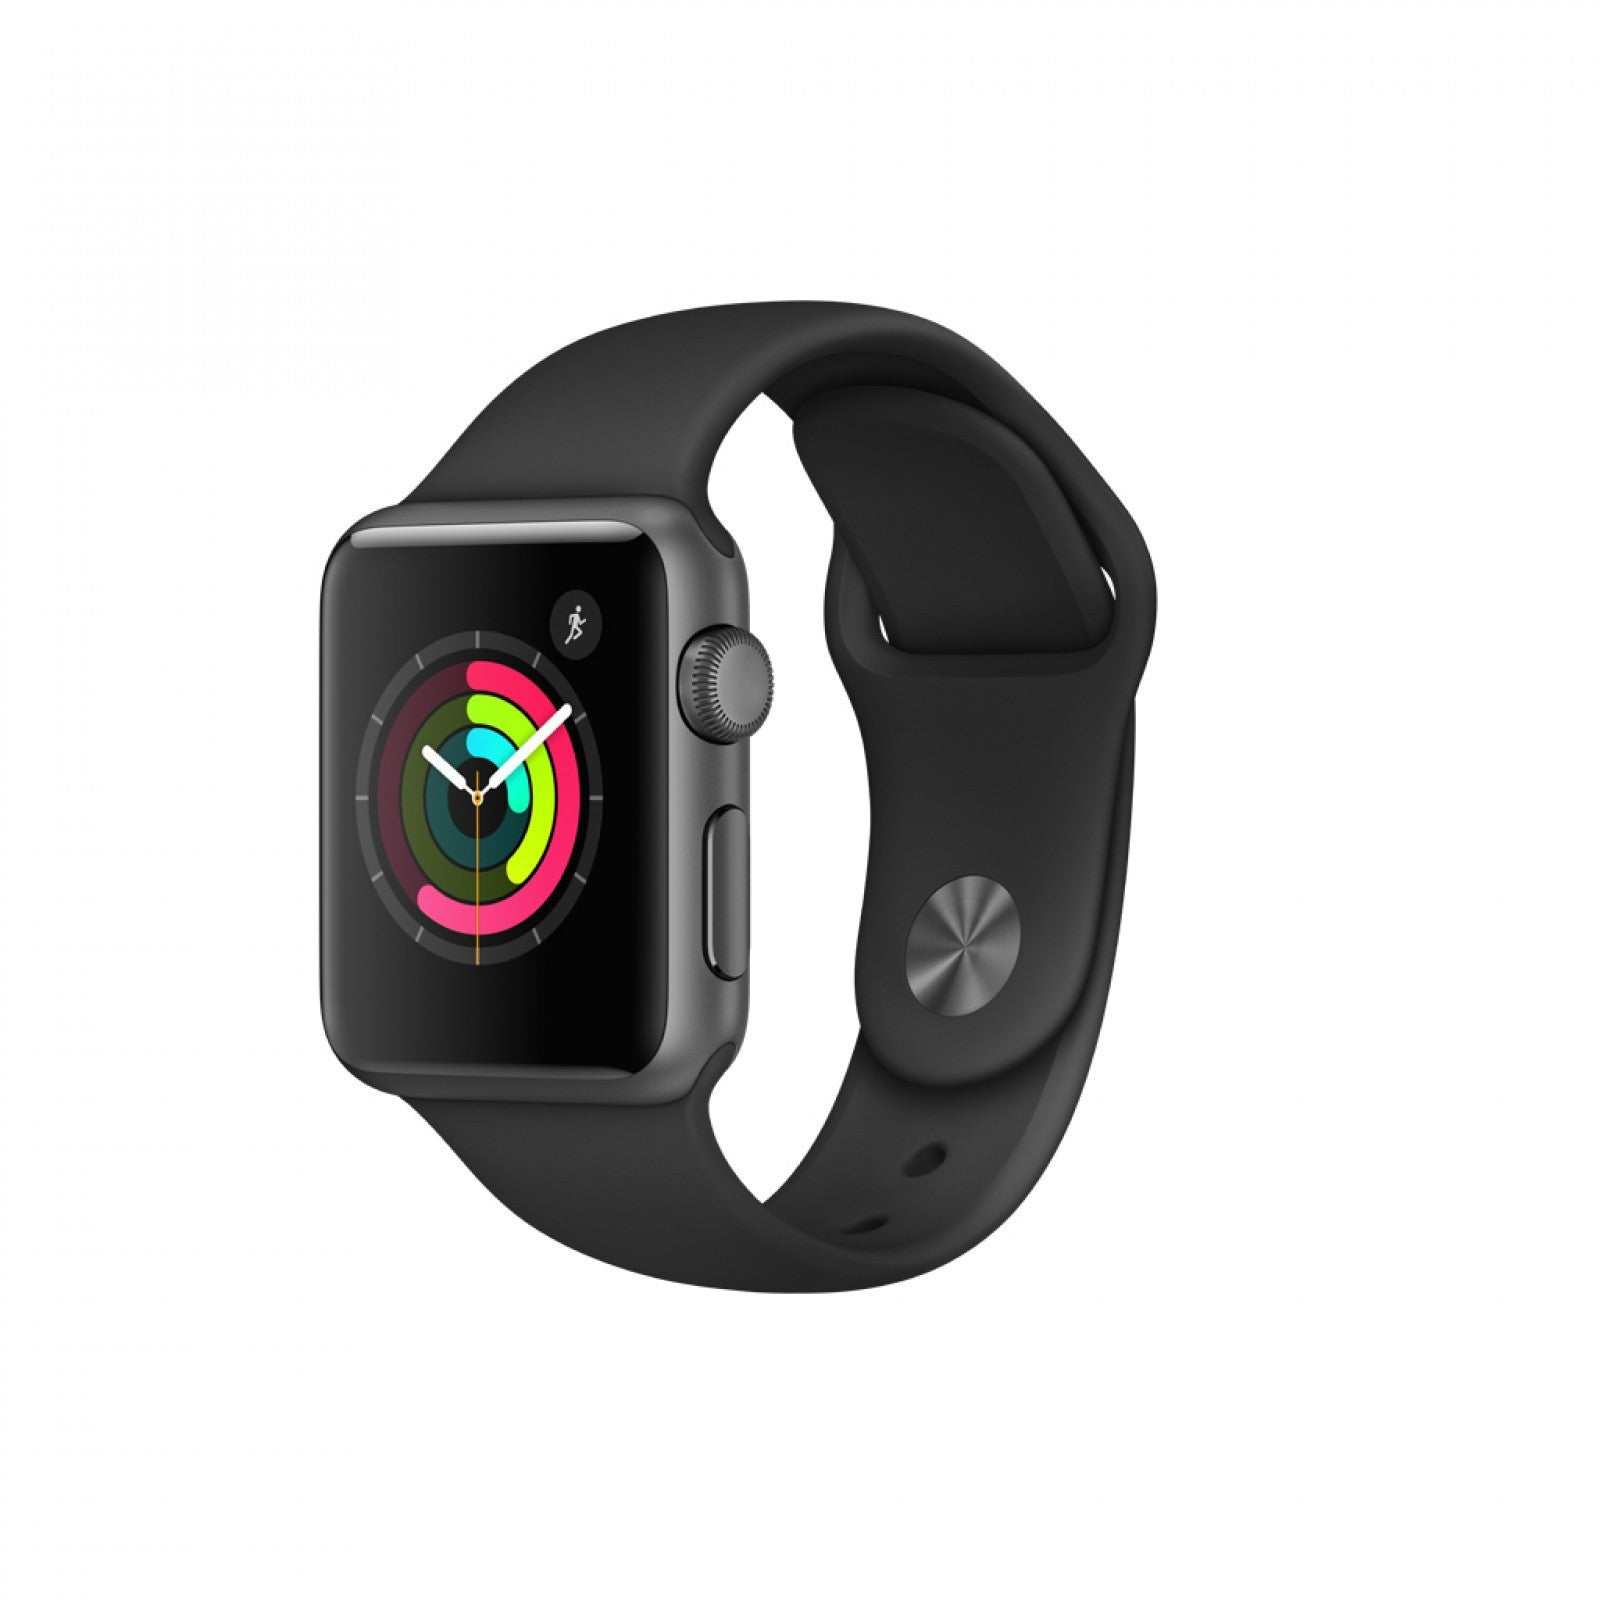 iStore smart watch 38mm Space Grey Aluminium Case with Black Sport Band - Series 1